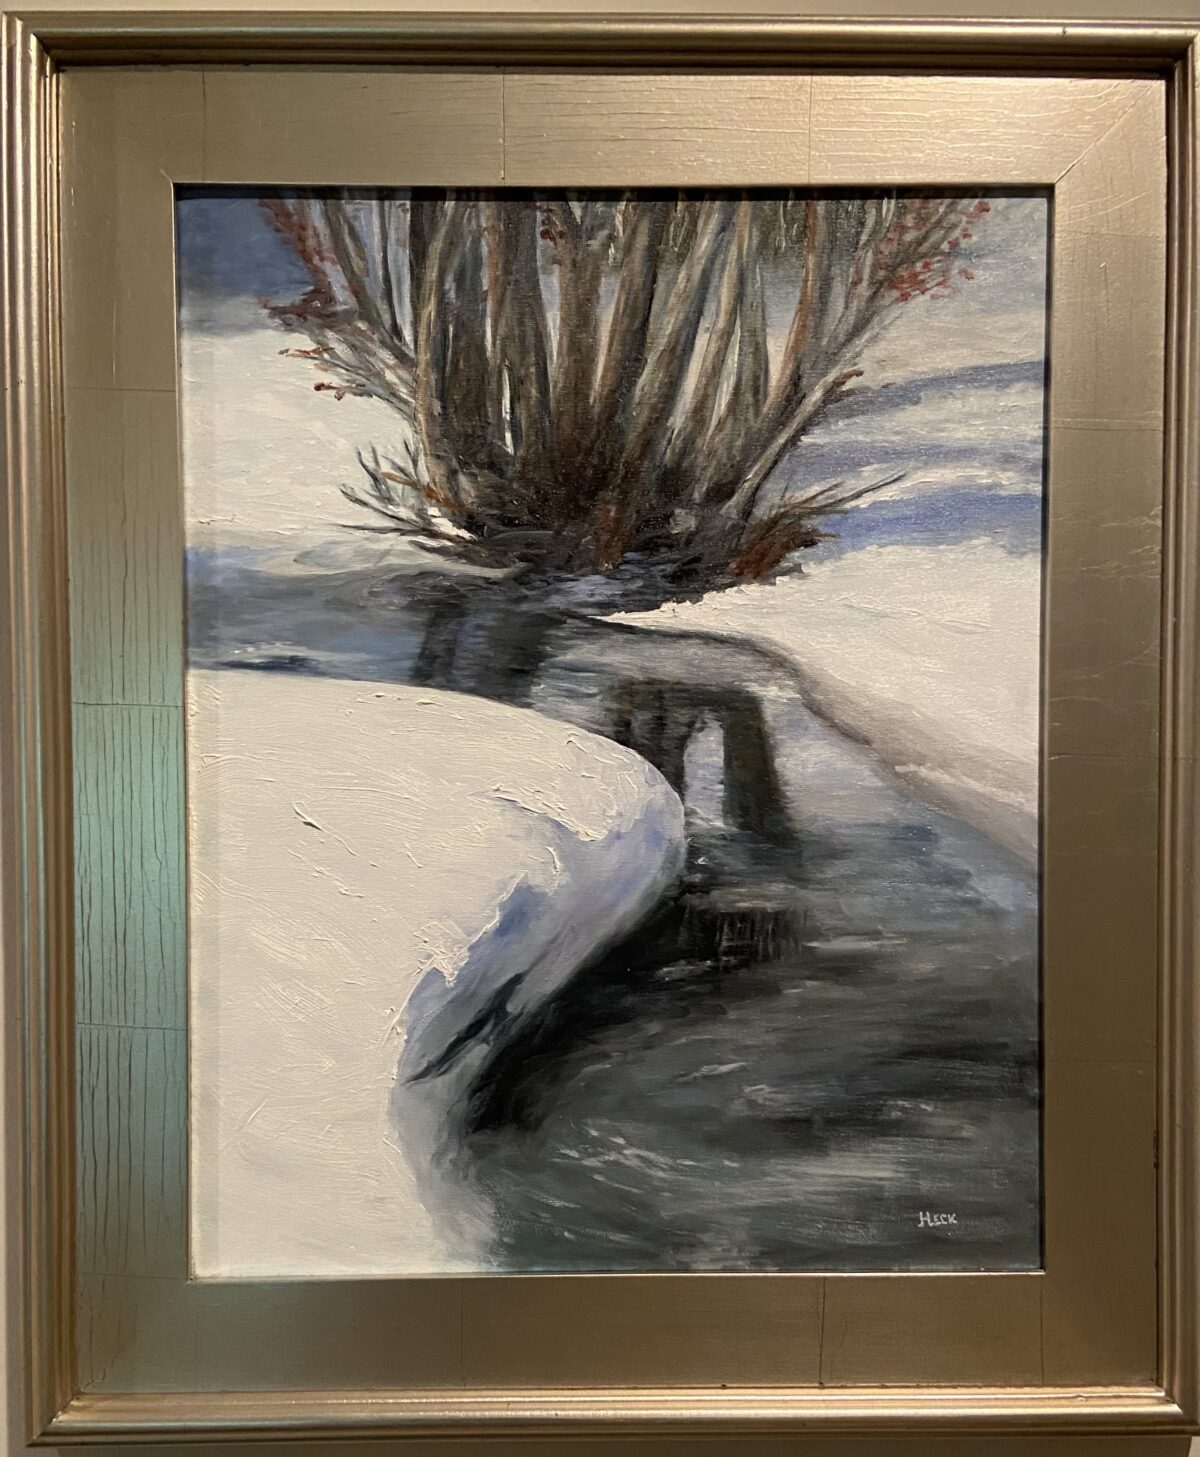 109 - Winter Creek - 16 x 20 - Landscape - $125